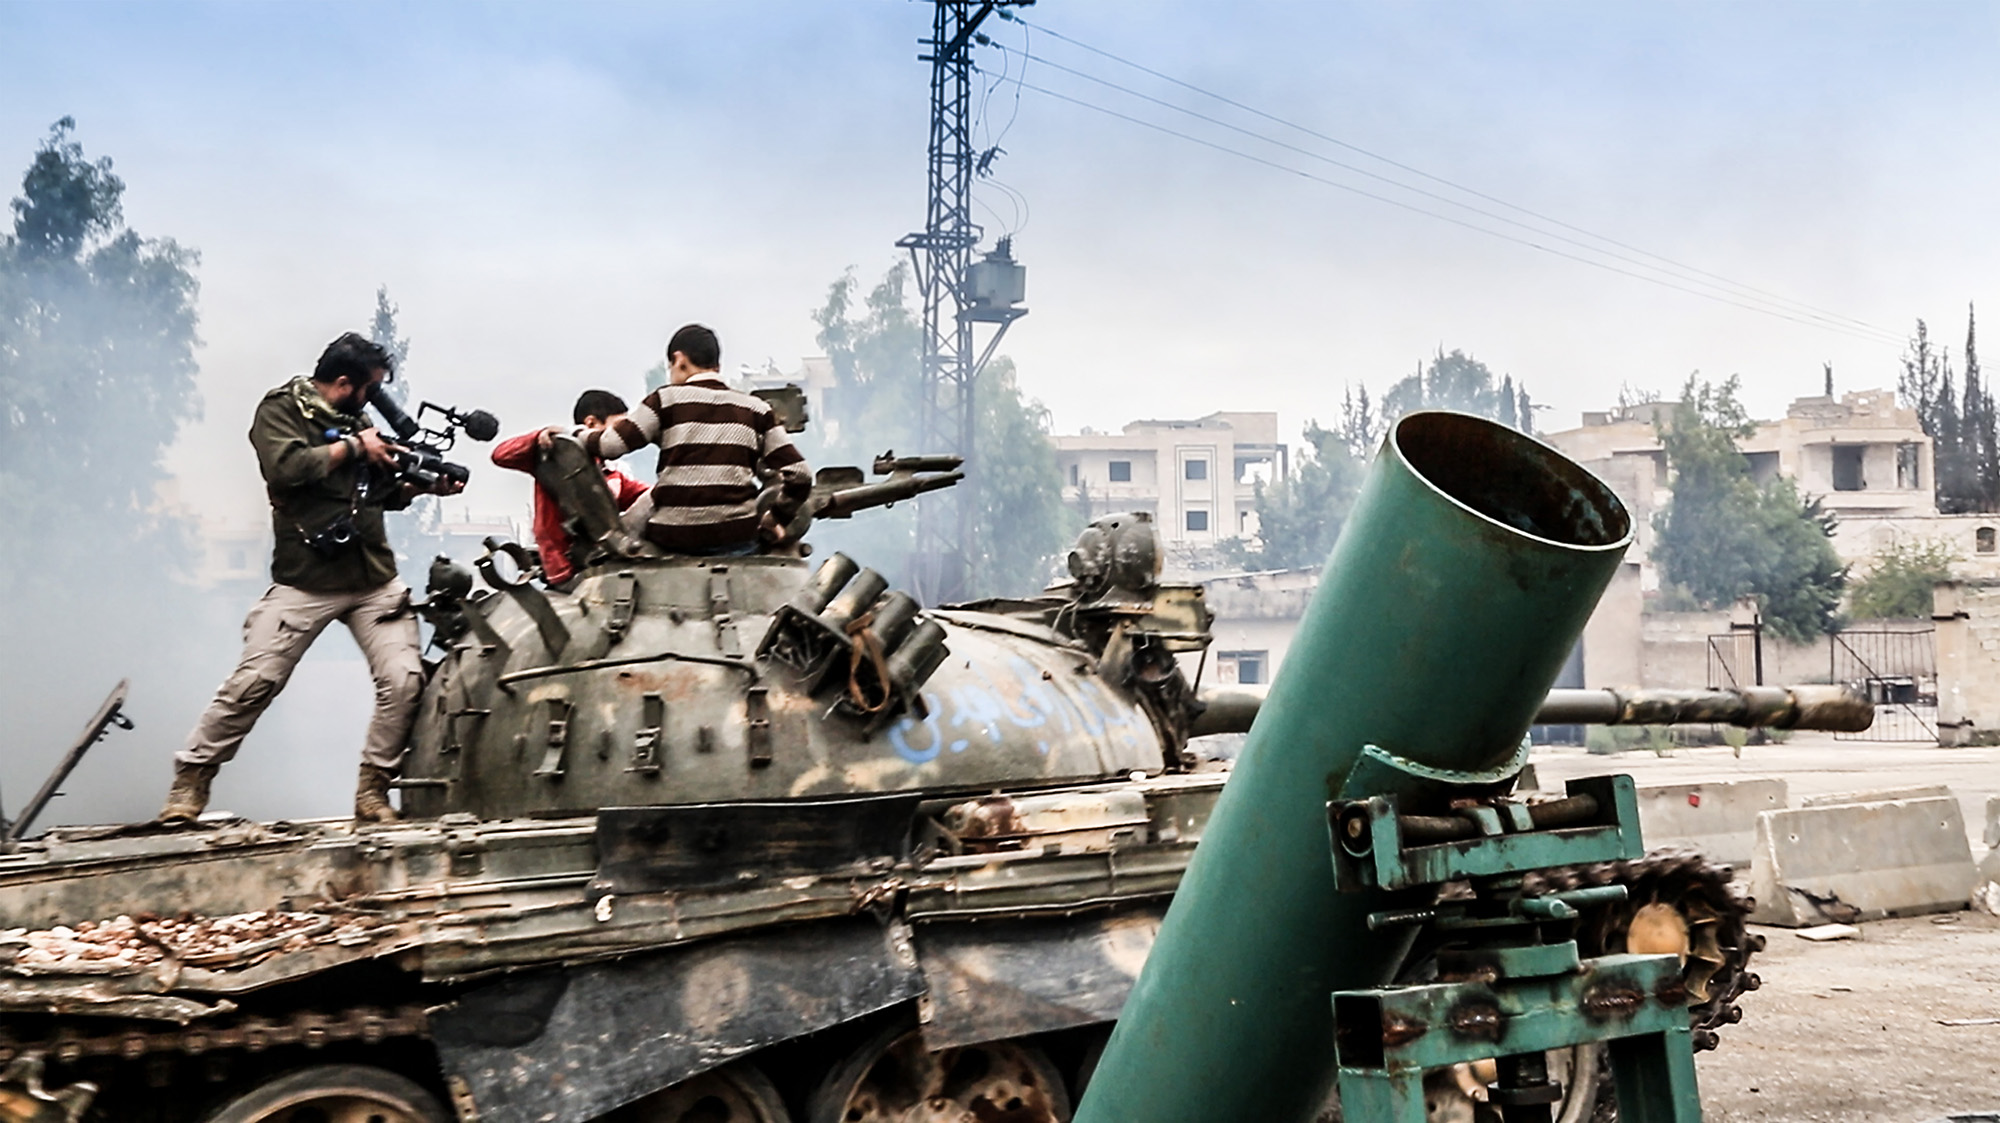 Riding around on a newly acquired SAA tank captured by Jasysh as Mujahdeen films for Vocativ in Syria 2014. © Jacob Simkin.